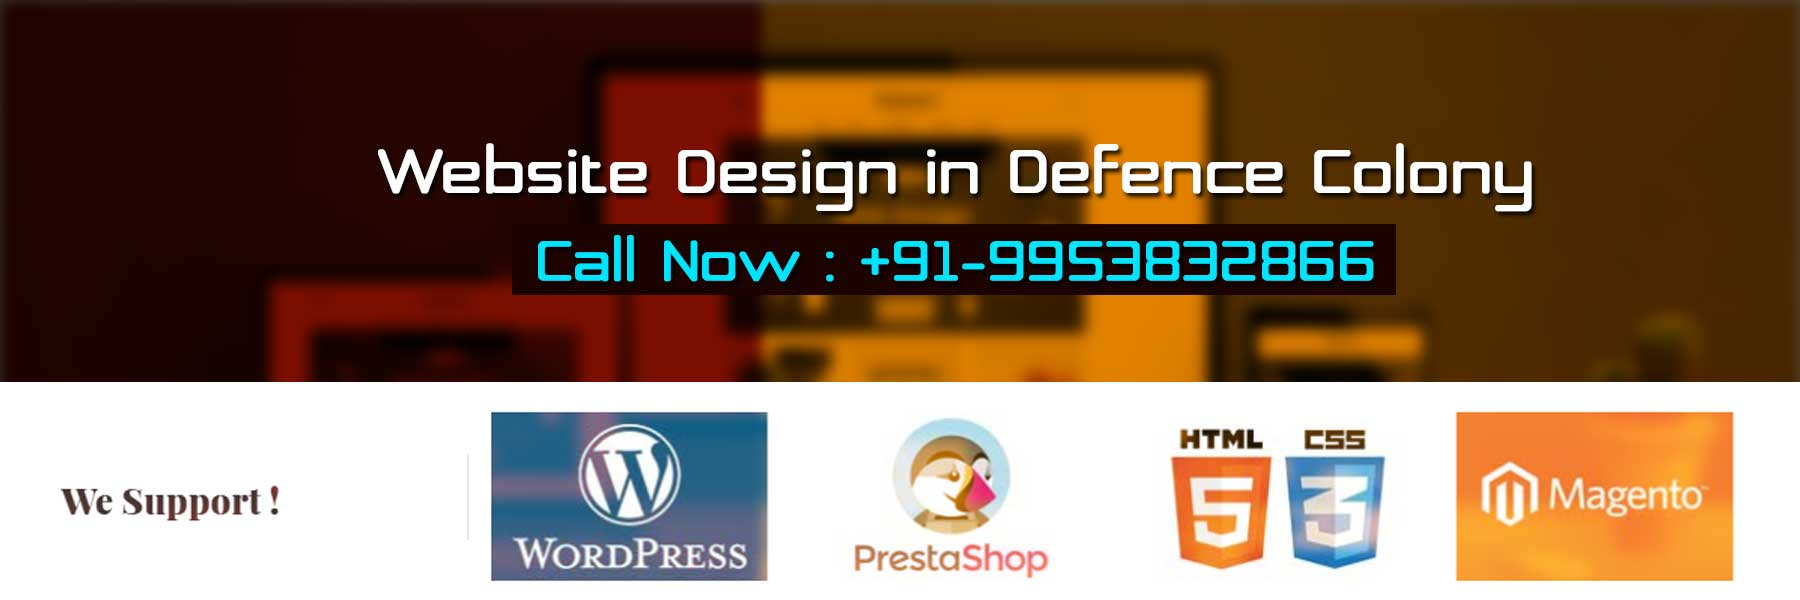 Website Design in Defence Colony